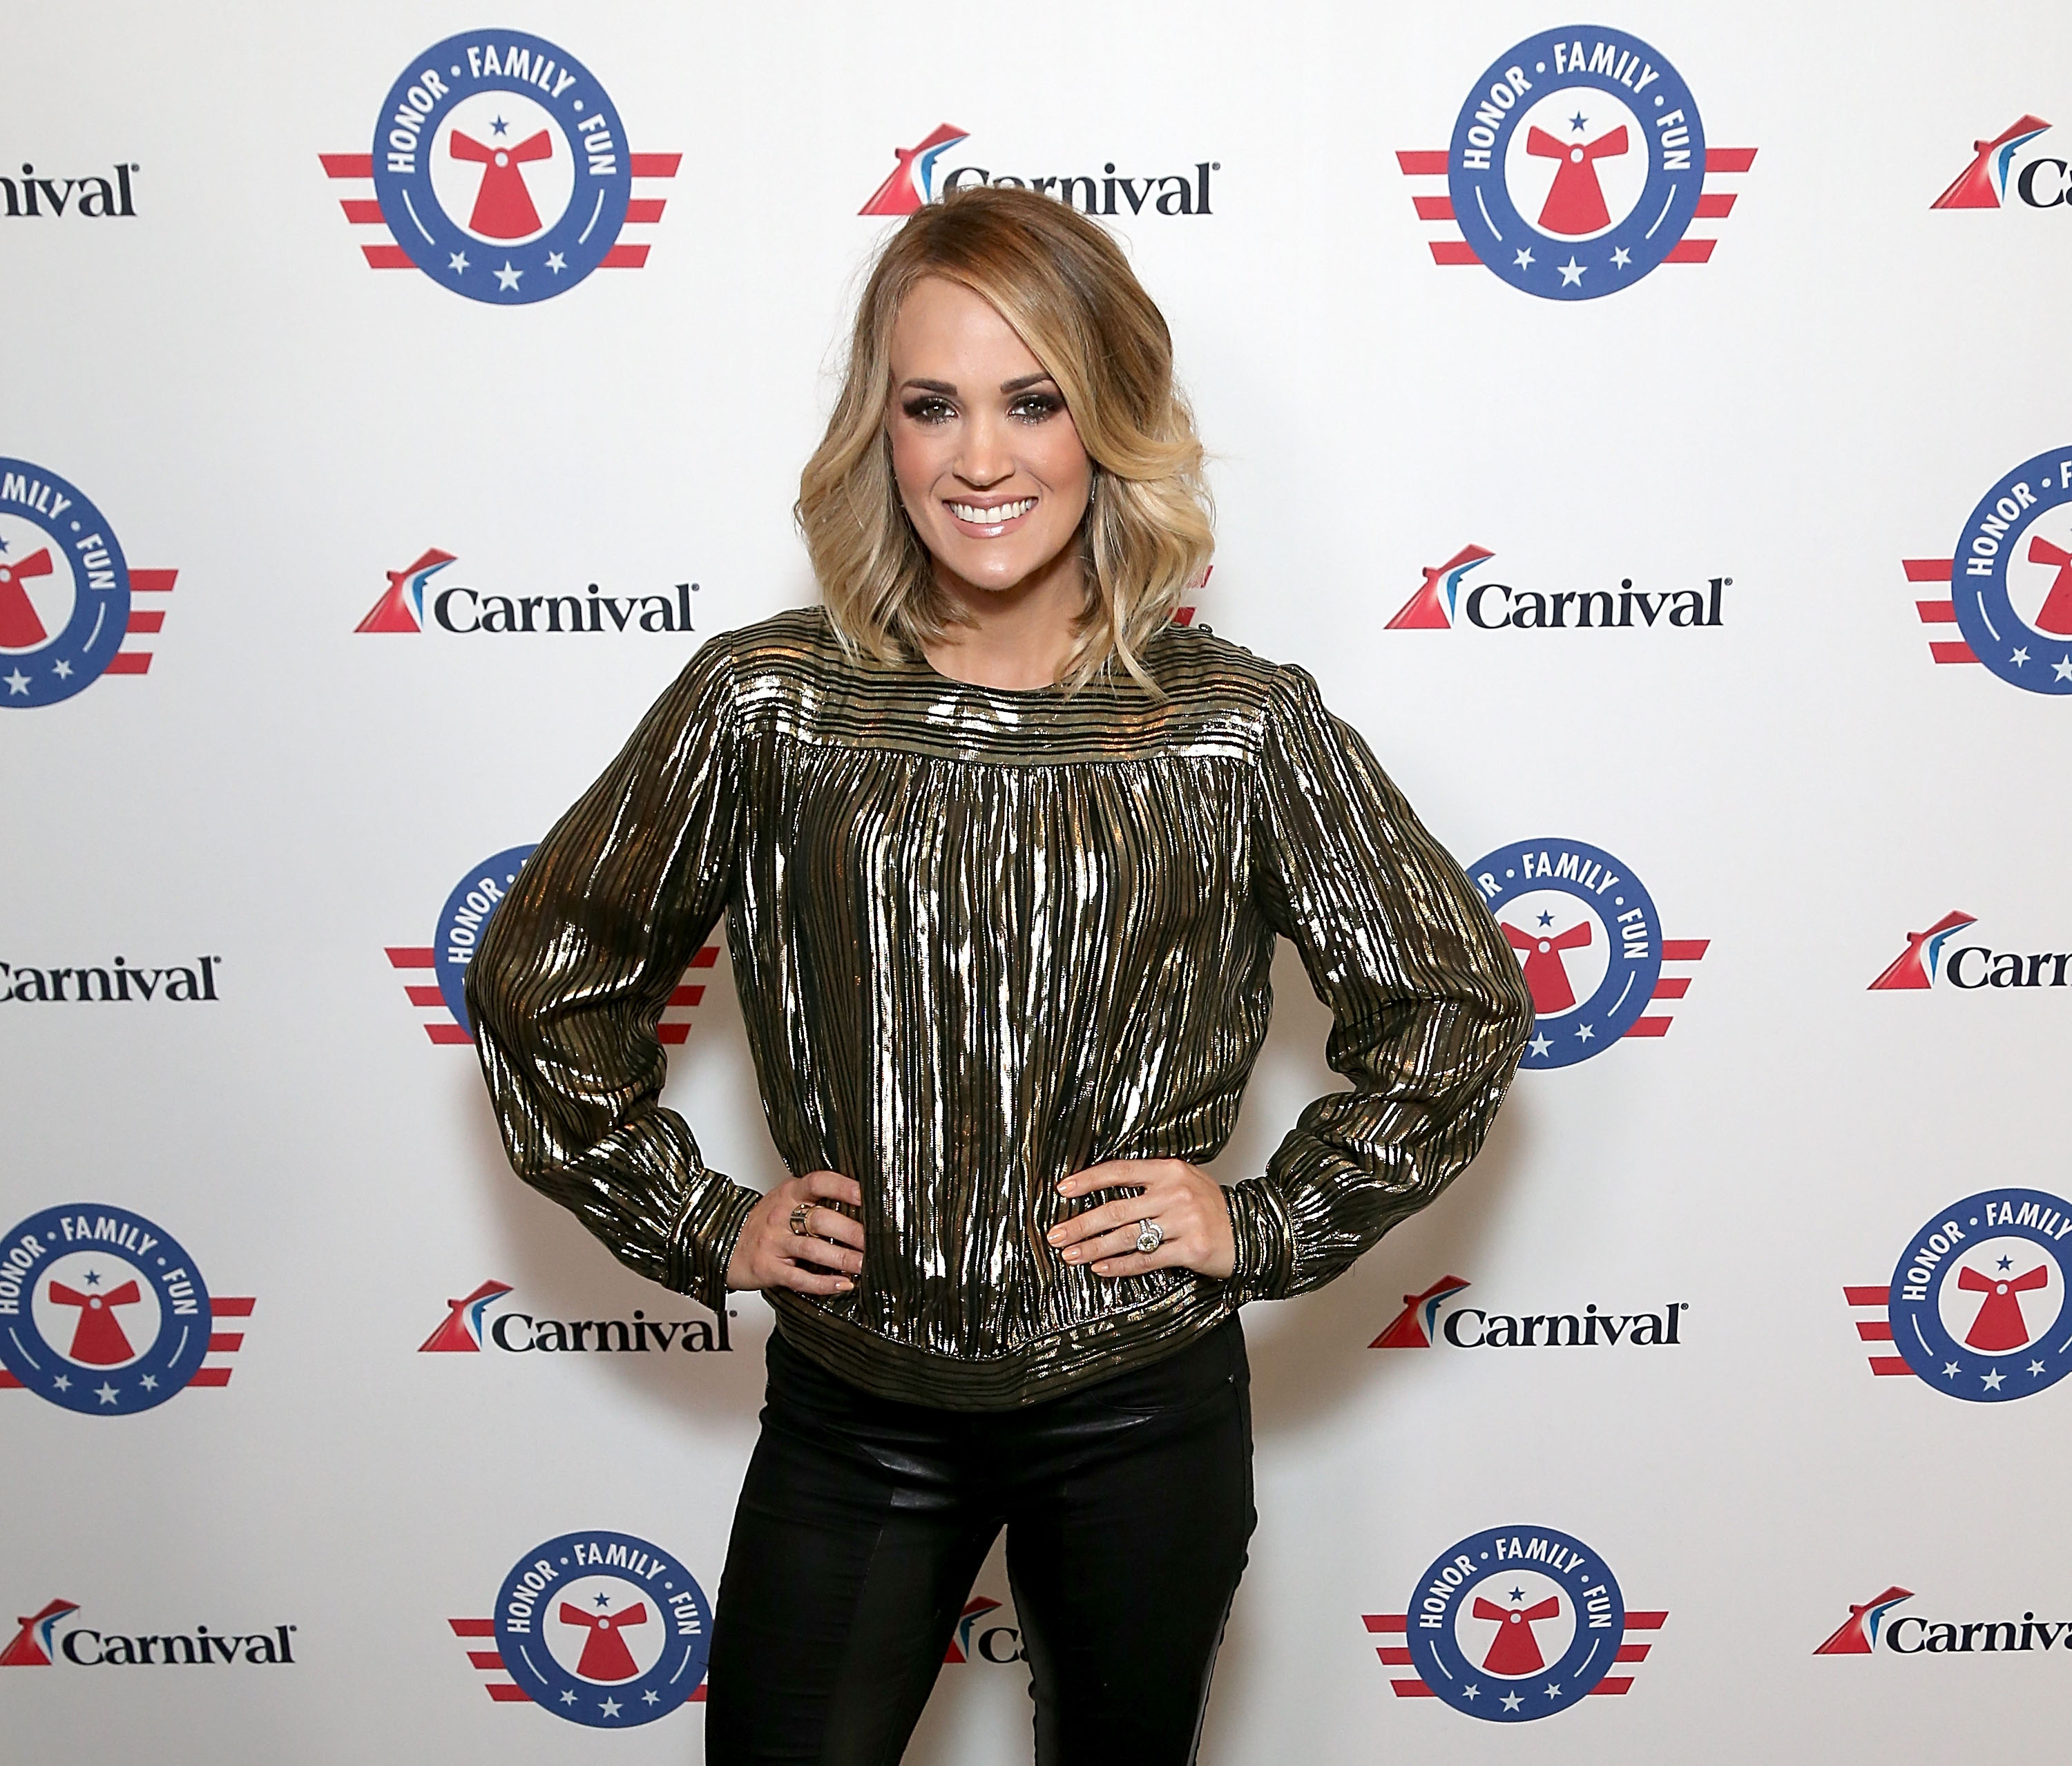 Carrie Underwood at a Carnival Cruise event on April 4, 2017 in Catalina Island, California.  (Photo by Gary Miller/Getty Images)